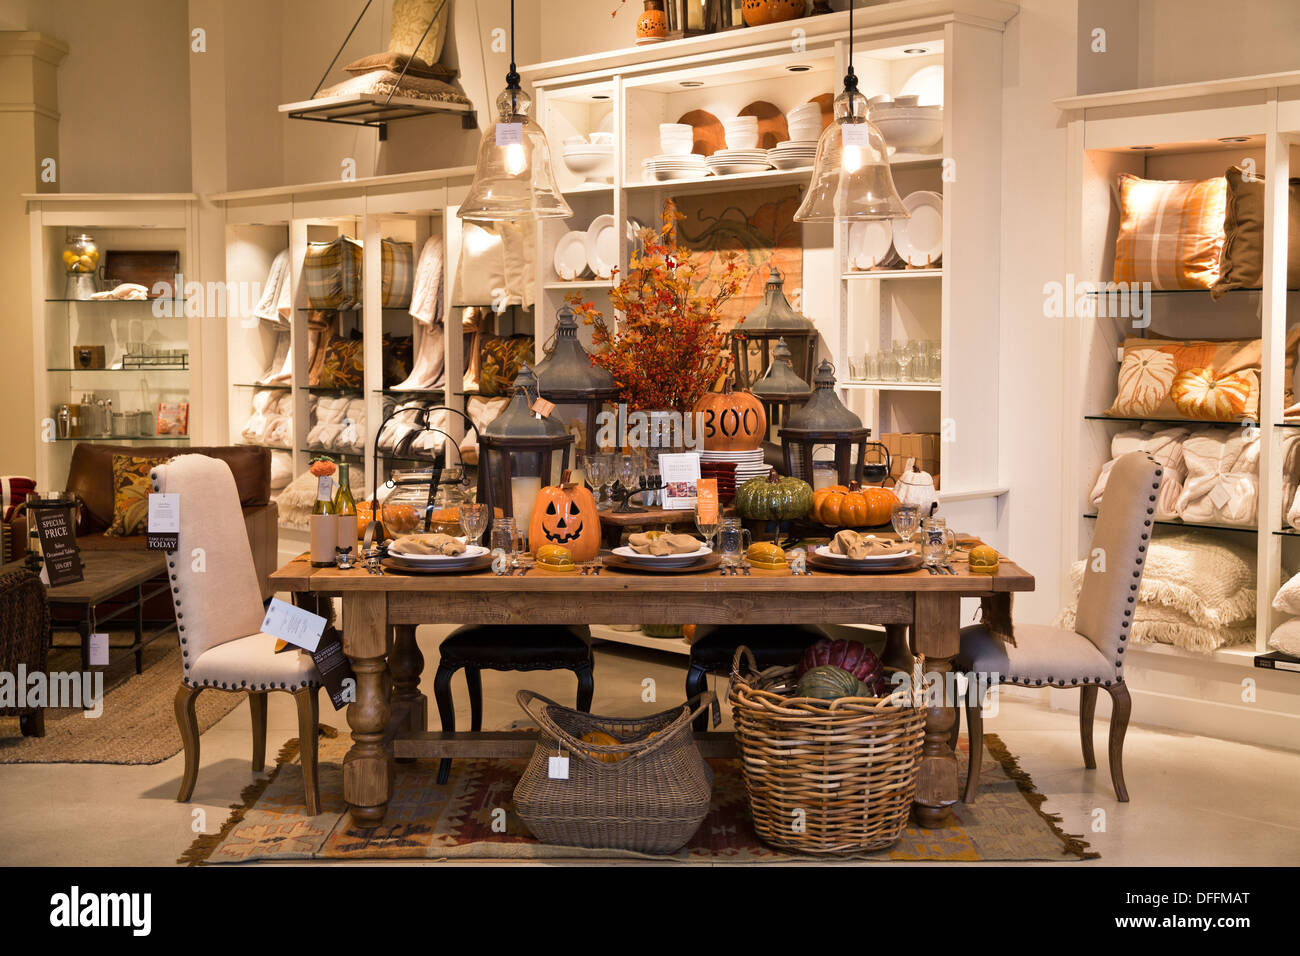 Home Decor For Sale: Pottery Barn Display Things For Sale Store Decorations